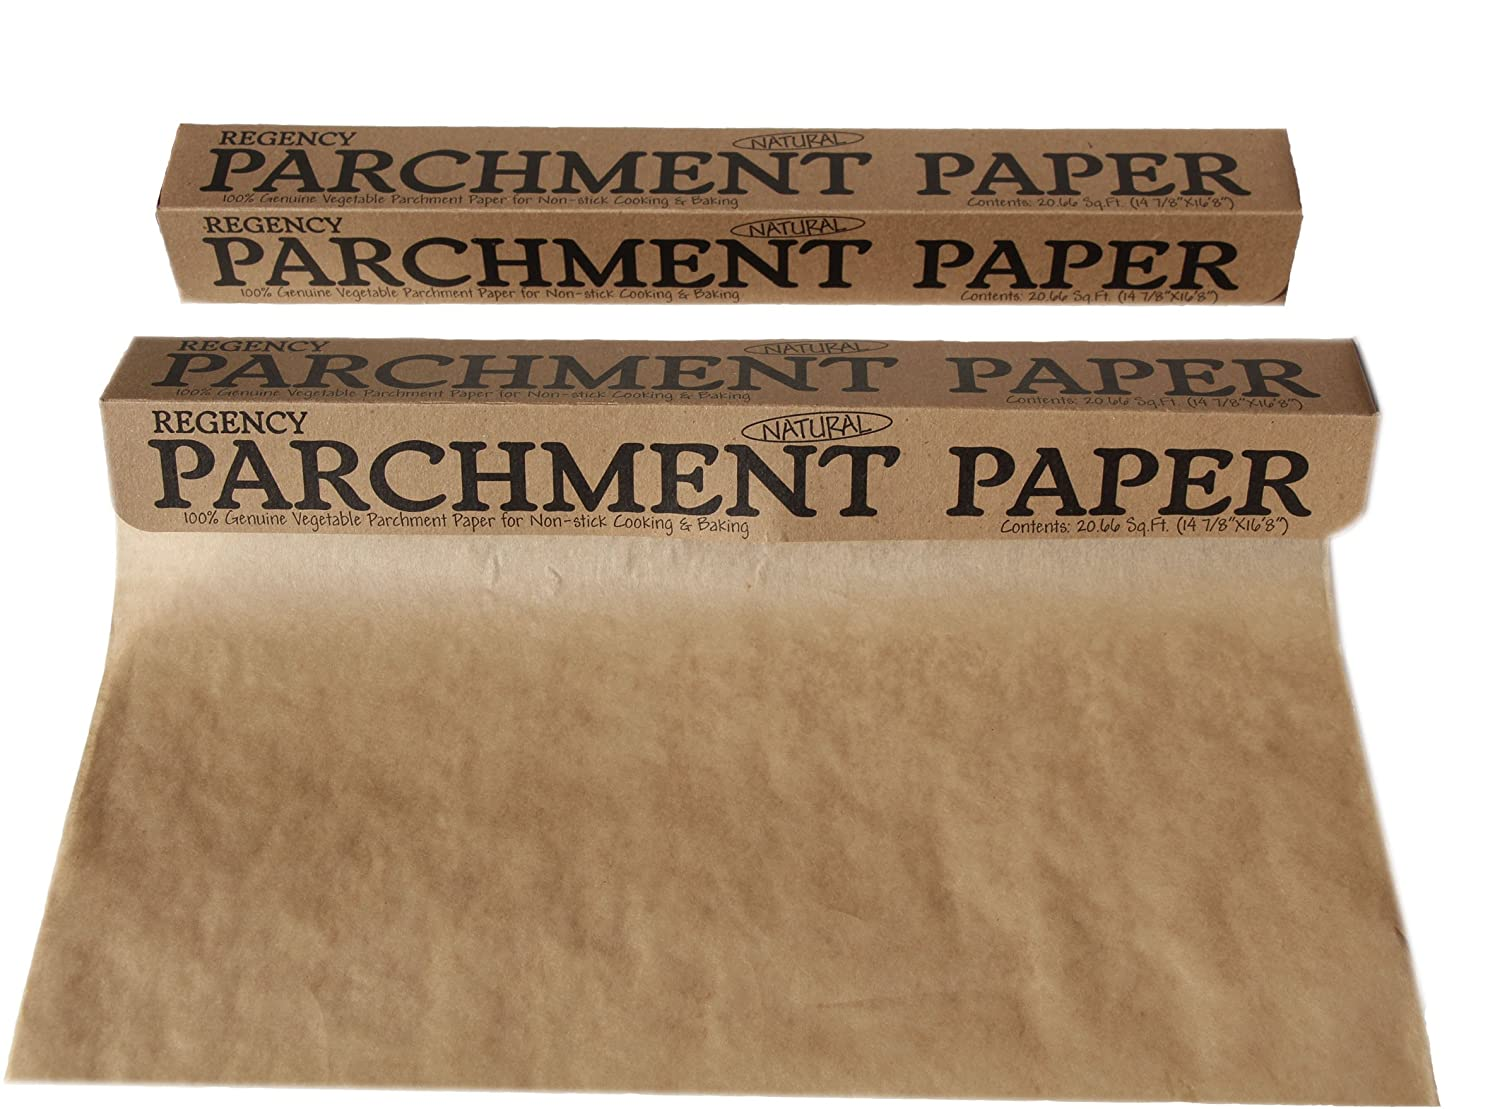 parchment paper for sale Amazoncom: genuine parchment:5x7 inches real medieval parchment/vellum sheep/goat/calf skin: everything else.